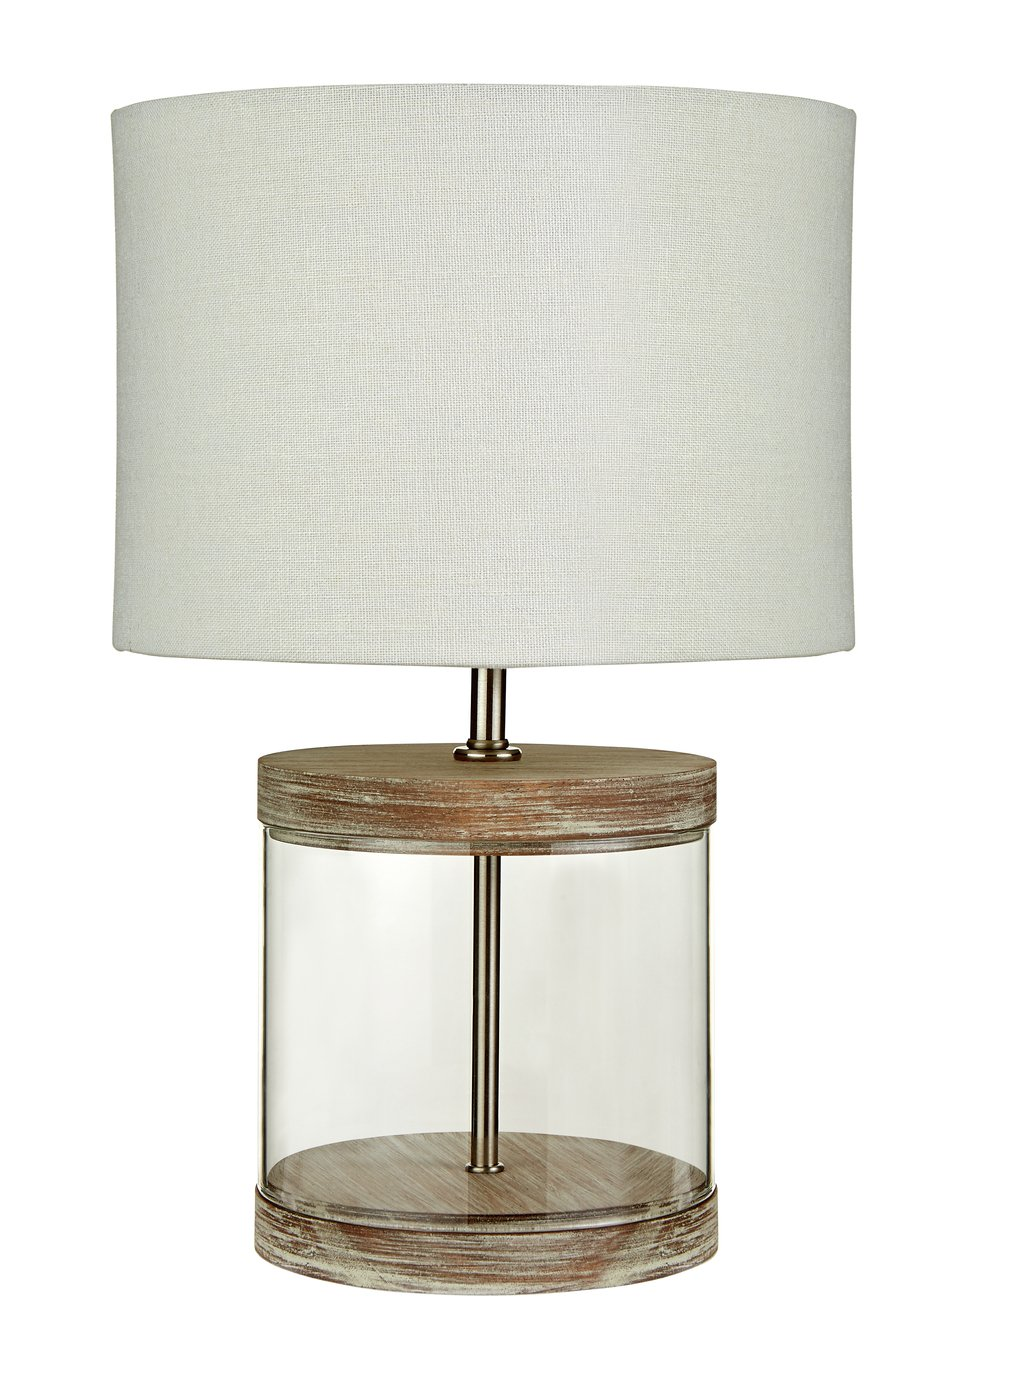 Coastal Lamps Buy Argos Home Coastal Wood Glass Table Lamp Table Lamps